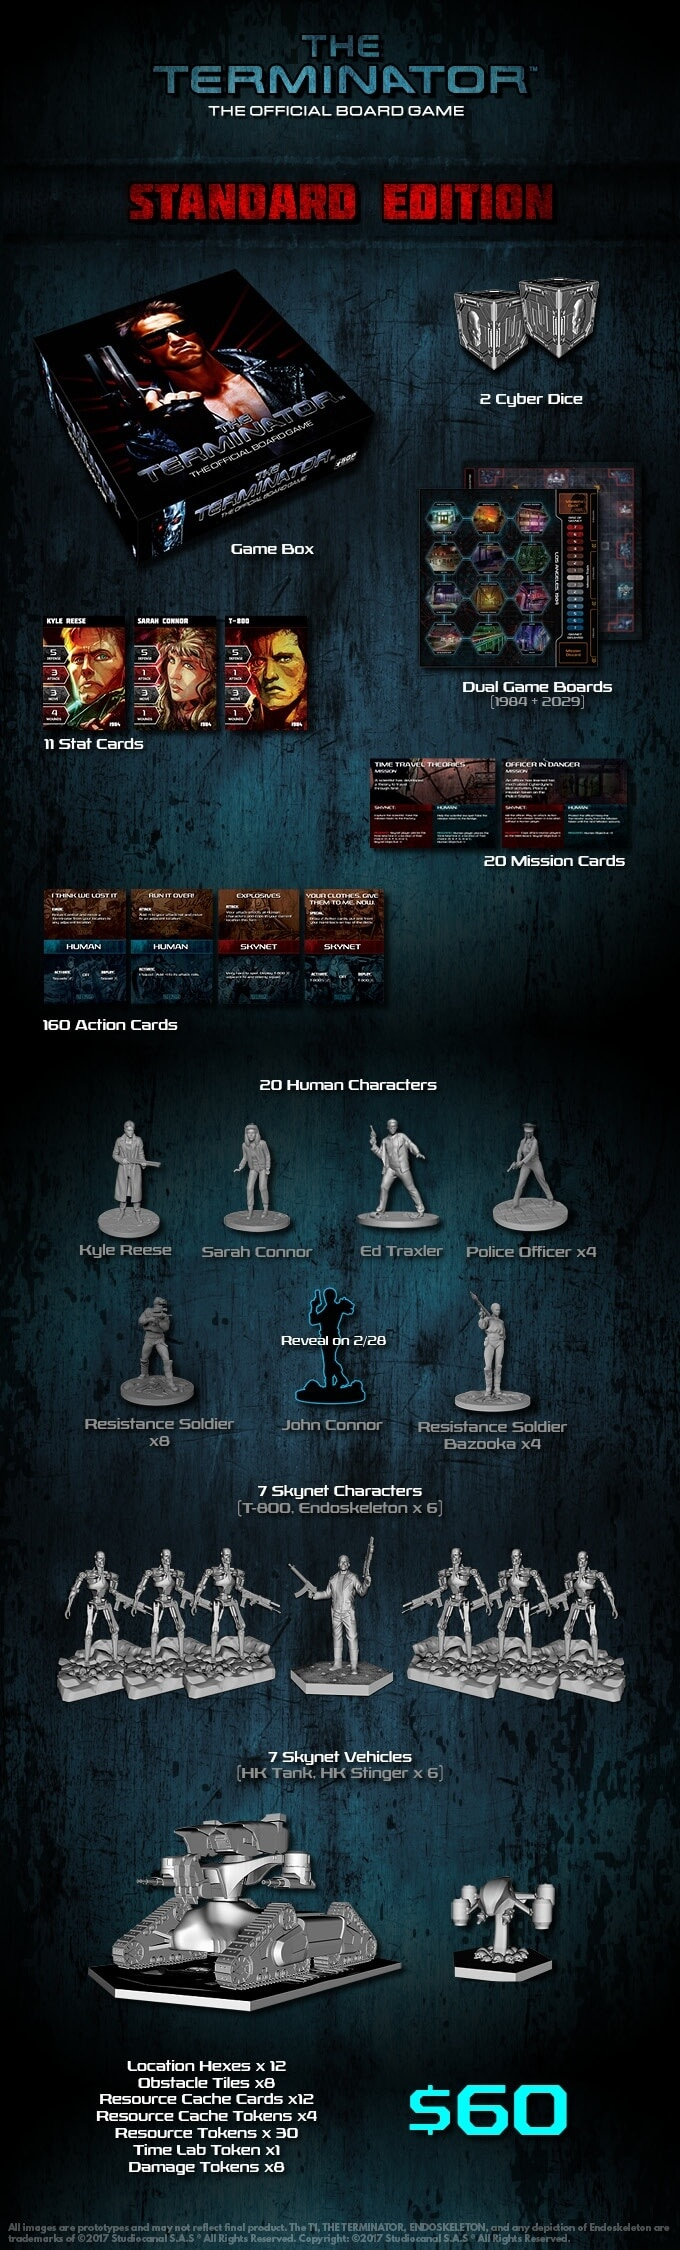 the terminator board game miniatures 1 - The Terminator: The Official Board Game Kills it on Kickstarter